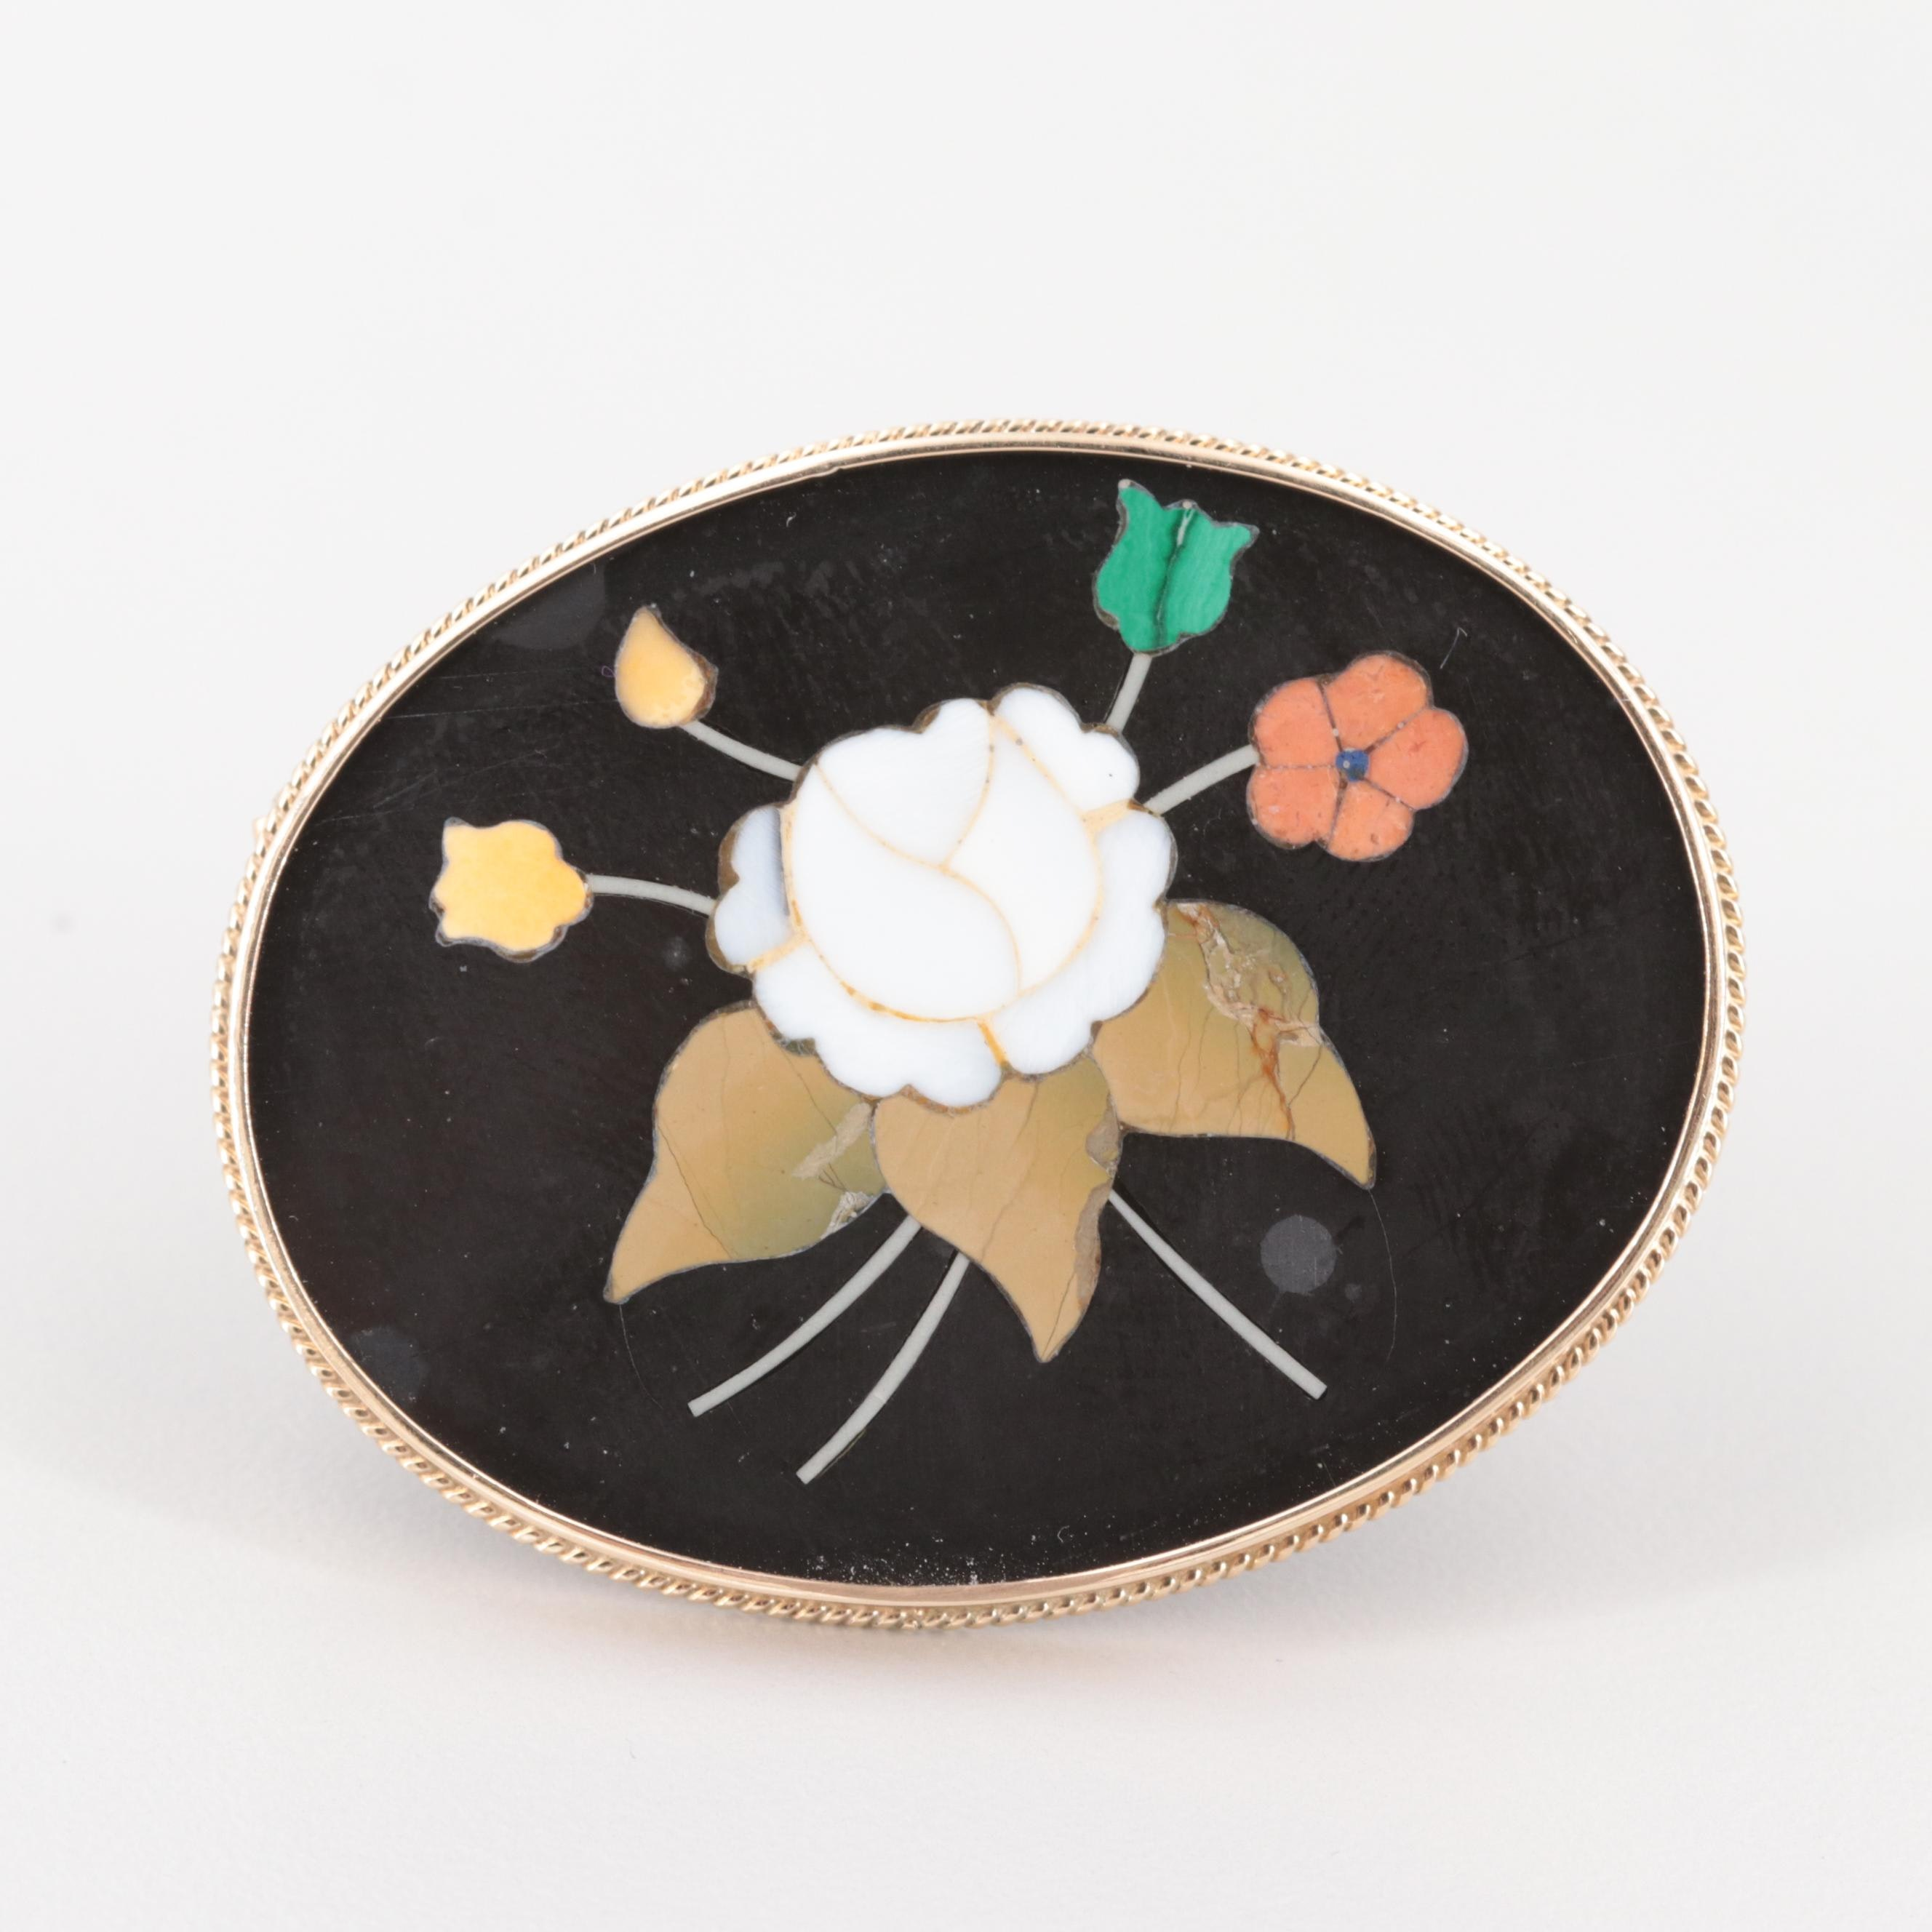 14K Yellow Gold Jasper, Malachite and Shell Inlay Floral Brooch